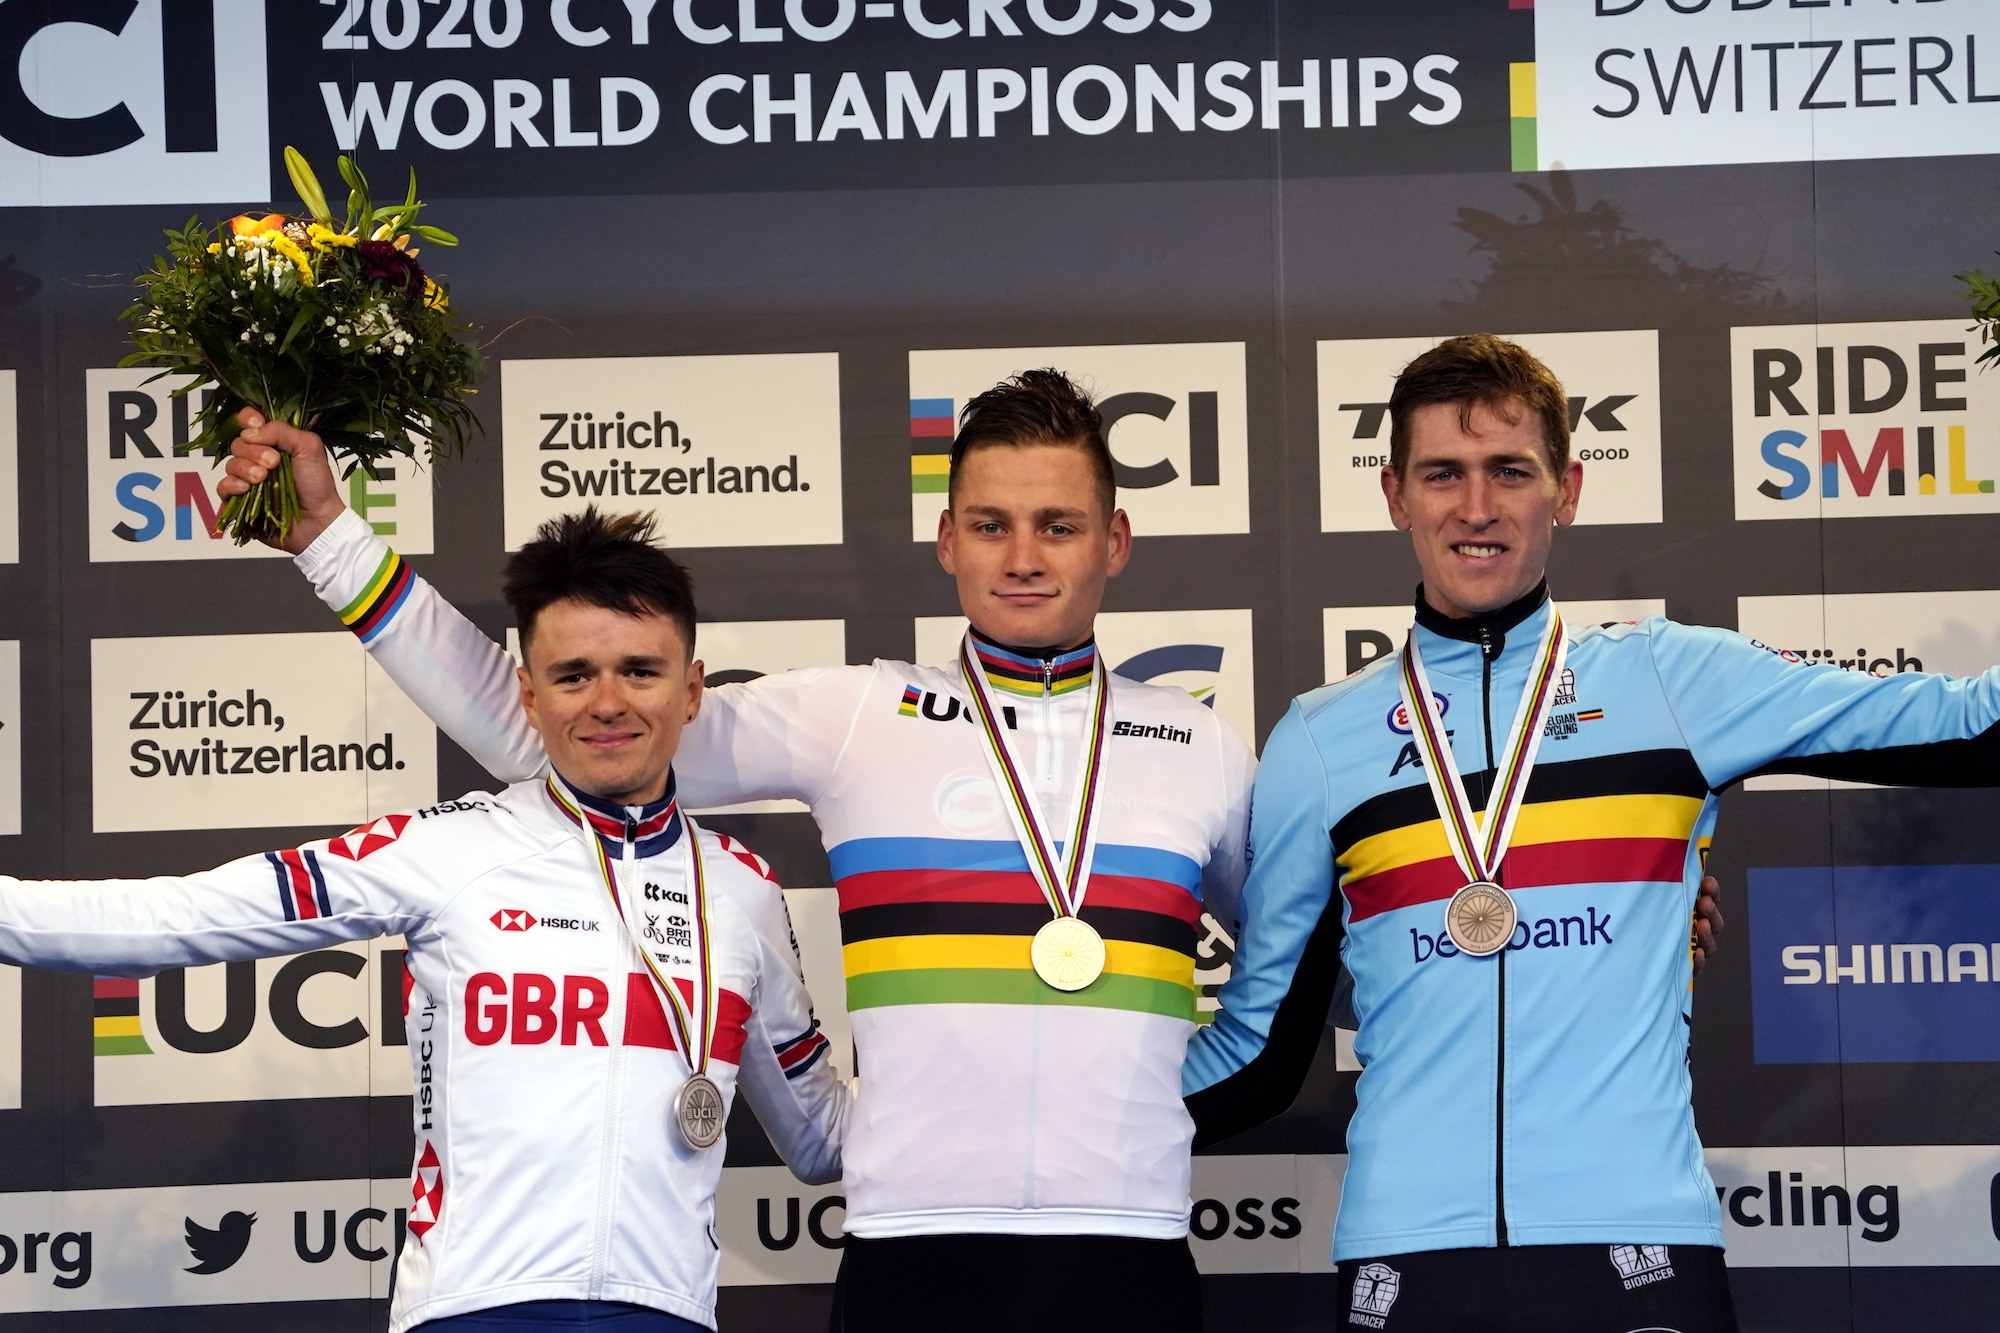 'Why not grow with Trinity? We could do the same as Van der Poel's team,' says Tom Pidcock - Cycling Weekly